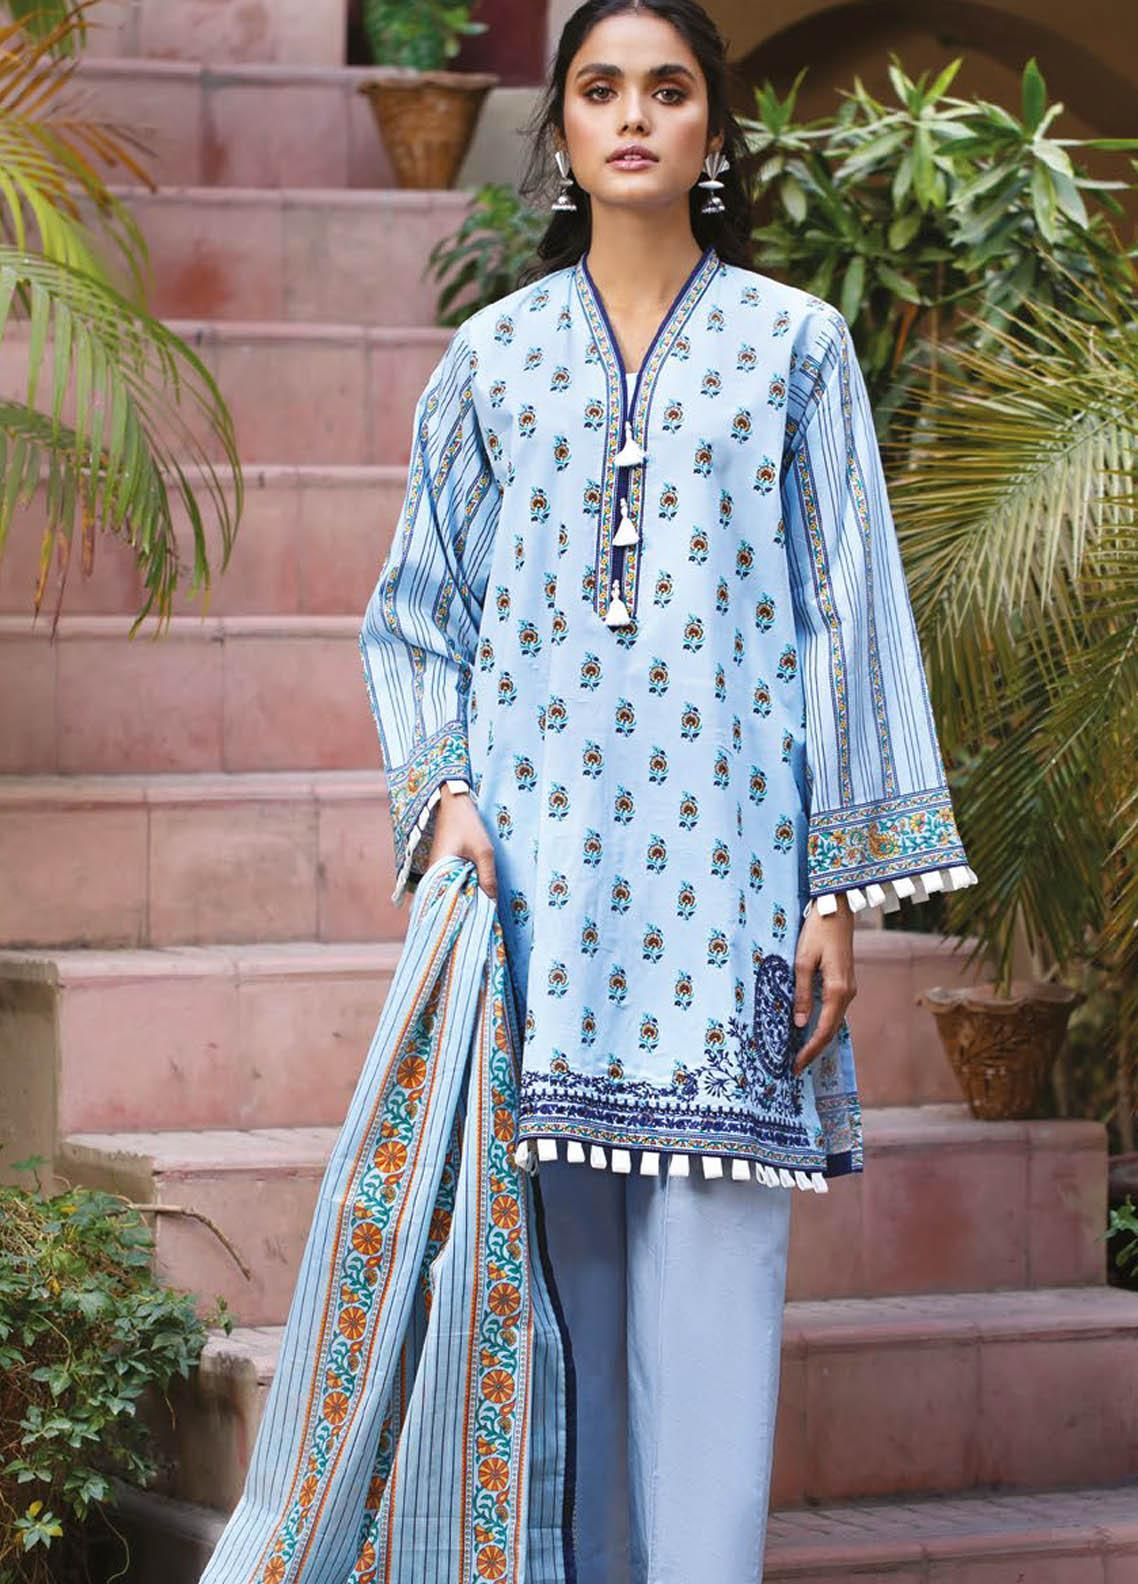 Orient Textile Embroidered Lawn Suits Unstitched 3 Piece OTL-21-008 Blue - Summer Collection